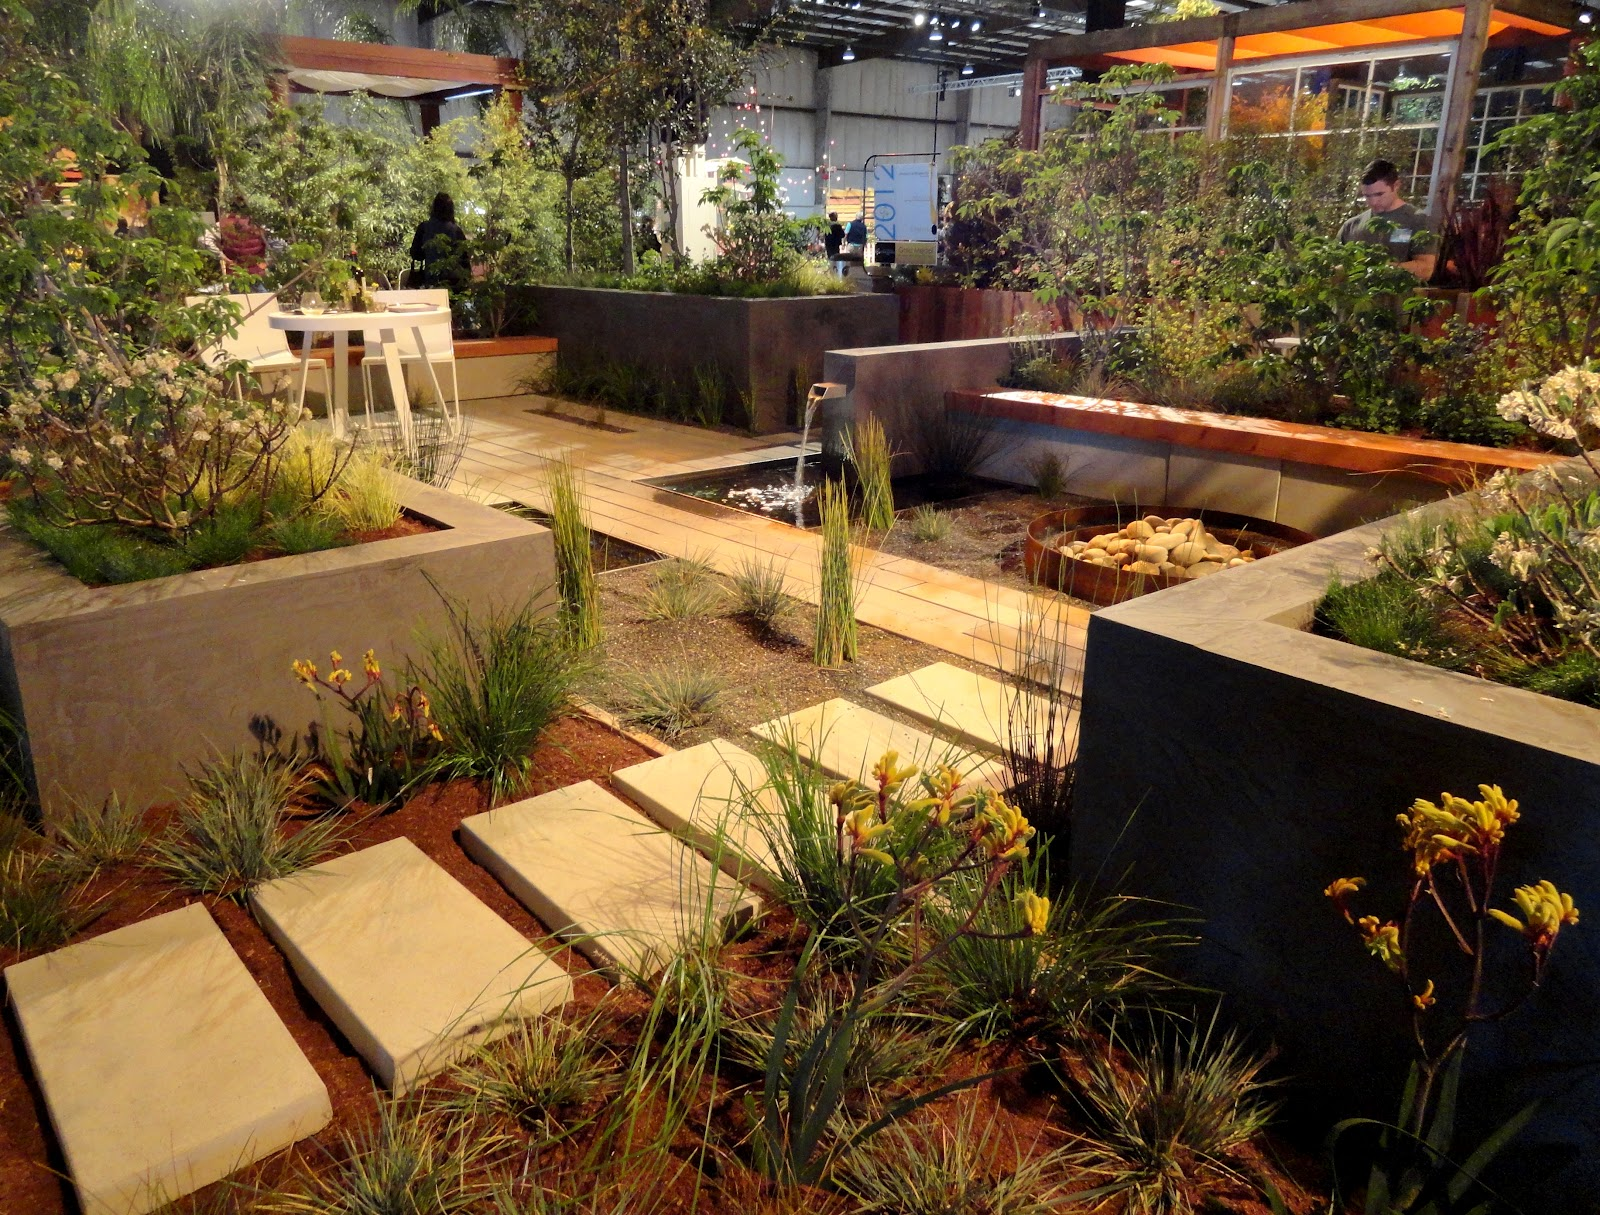 danger garden: The San Francisco Flower & Garden Show